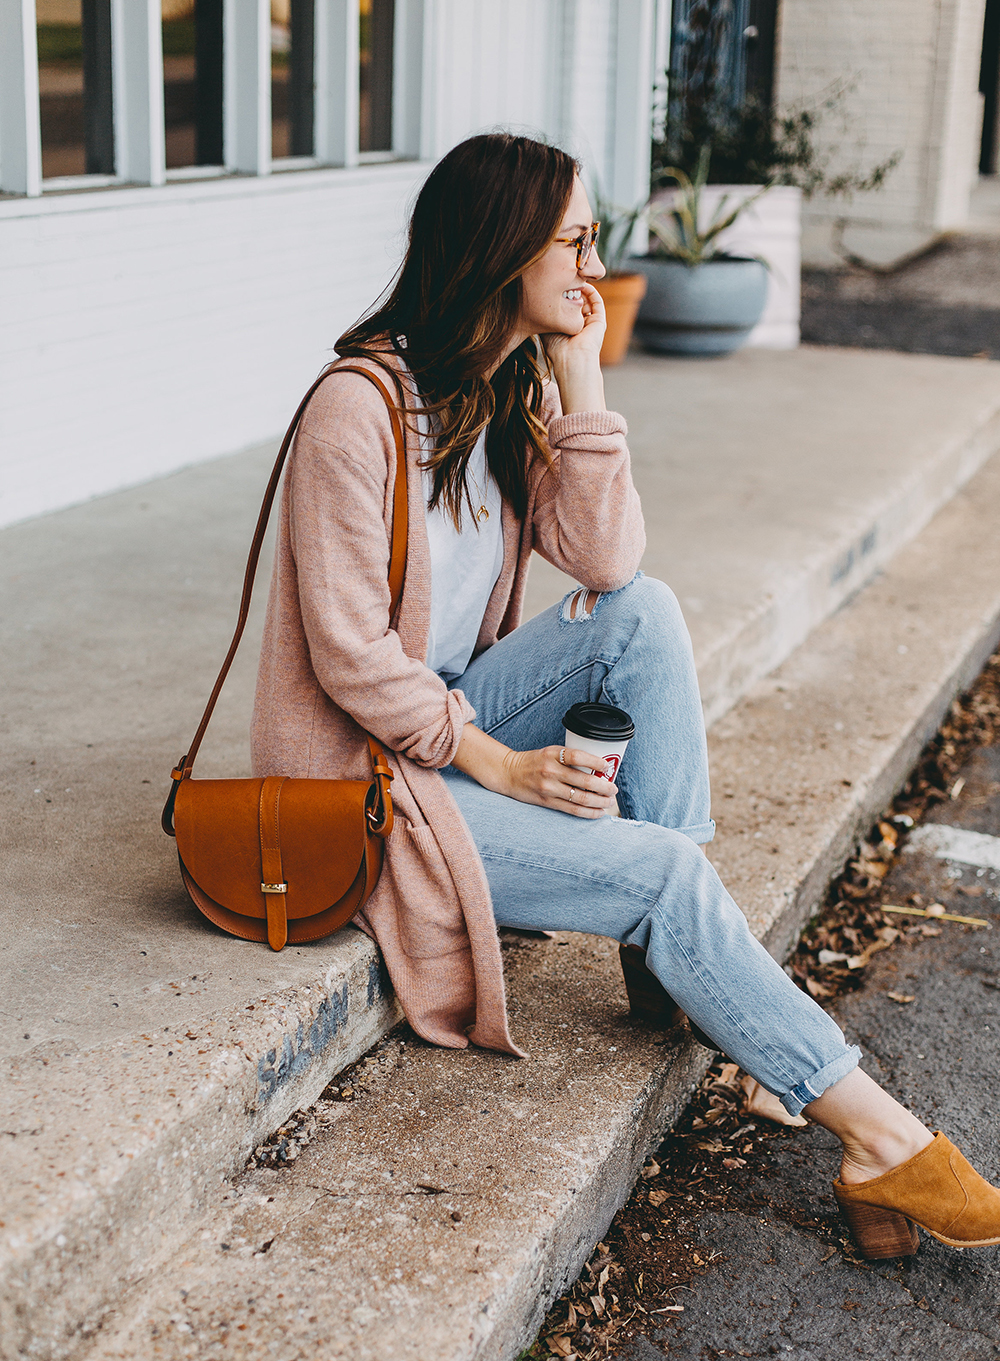 livvyland-blog-olivia-watson-austin-texas-fashion-blogger-spring-transition-wardrobe-pieces-madewell-blush-cardigan-tan-mules-4